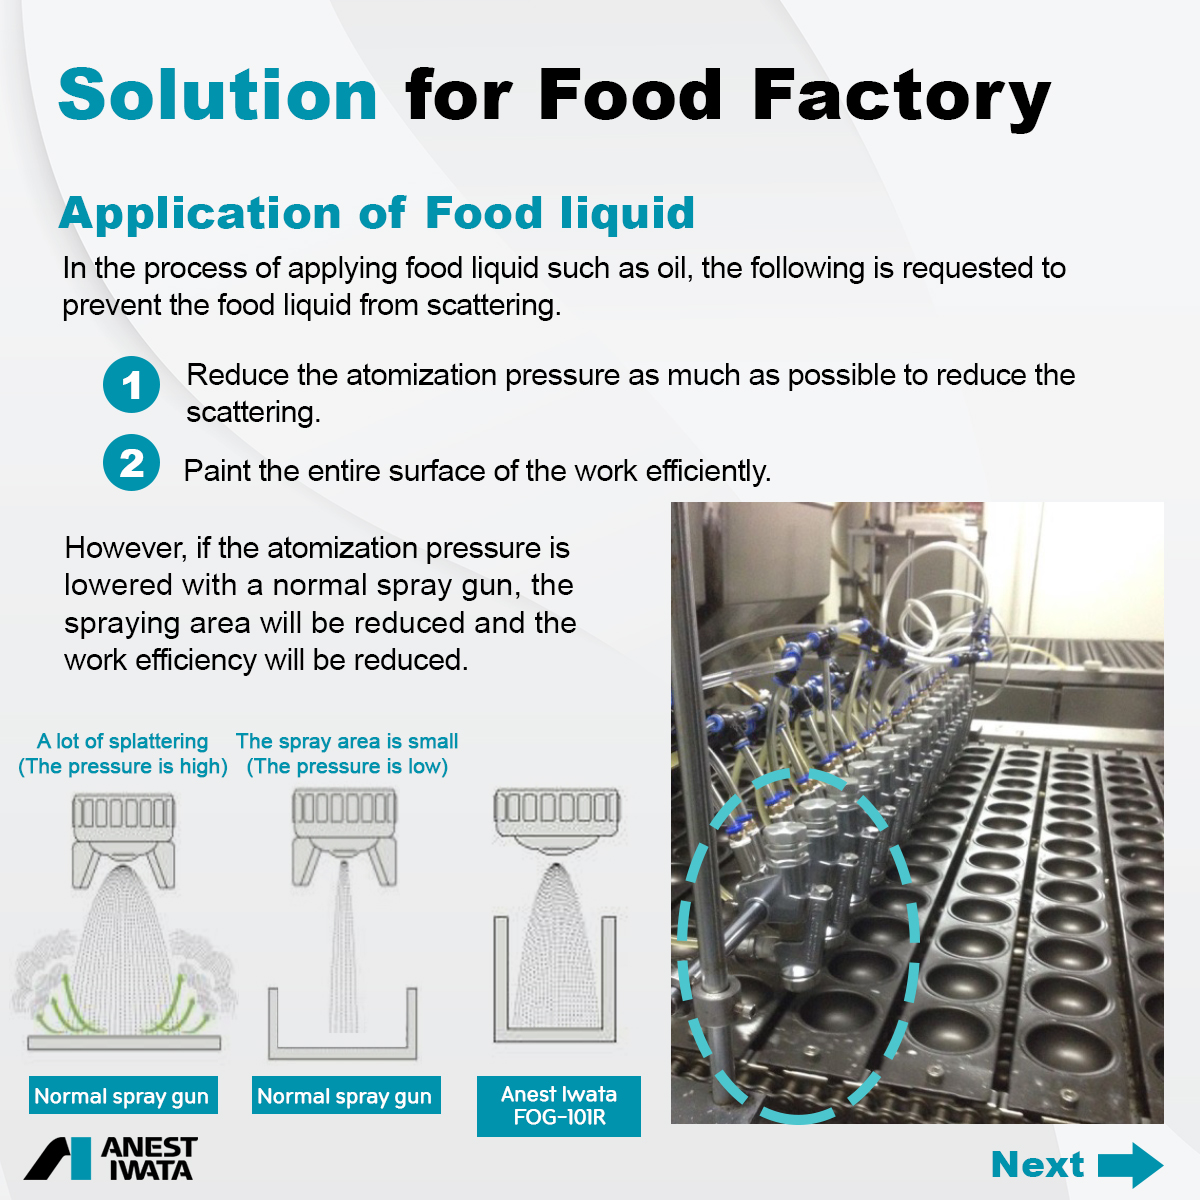 Solution for Food Factory